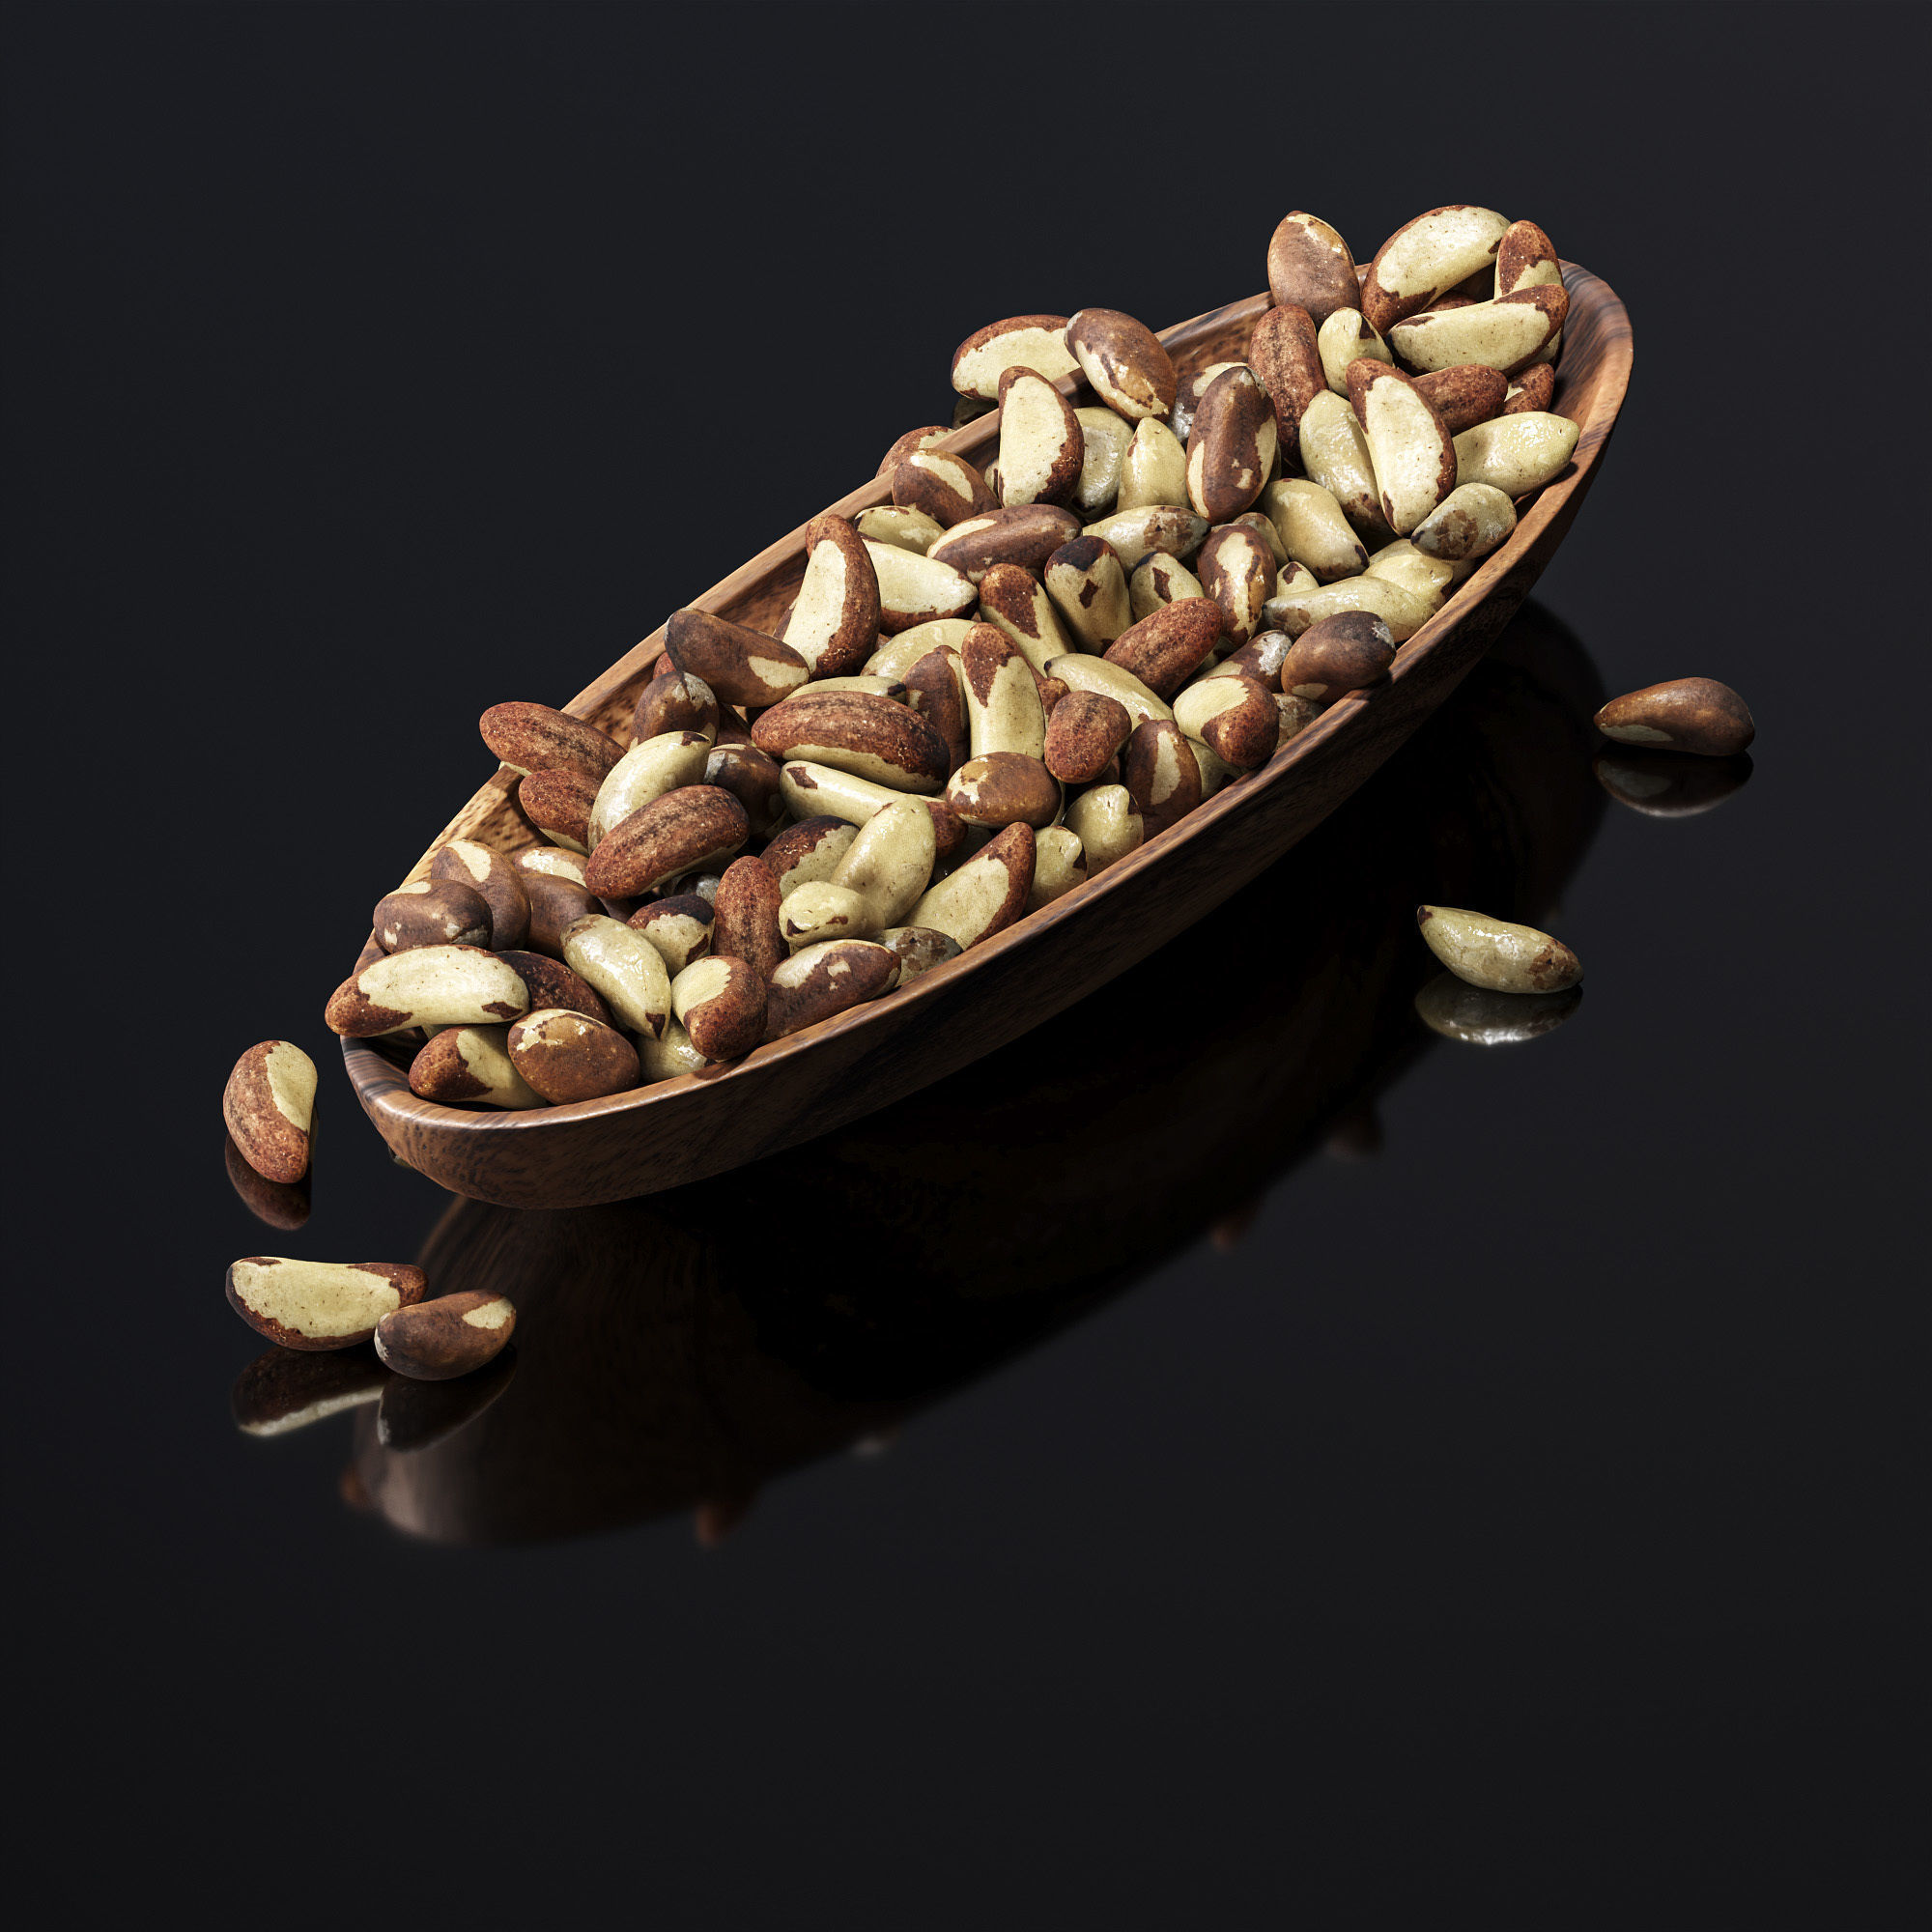 Brazil nuts in a wooden nut bowl